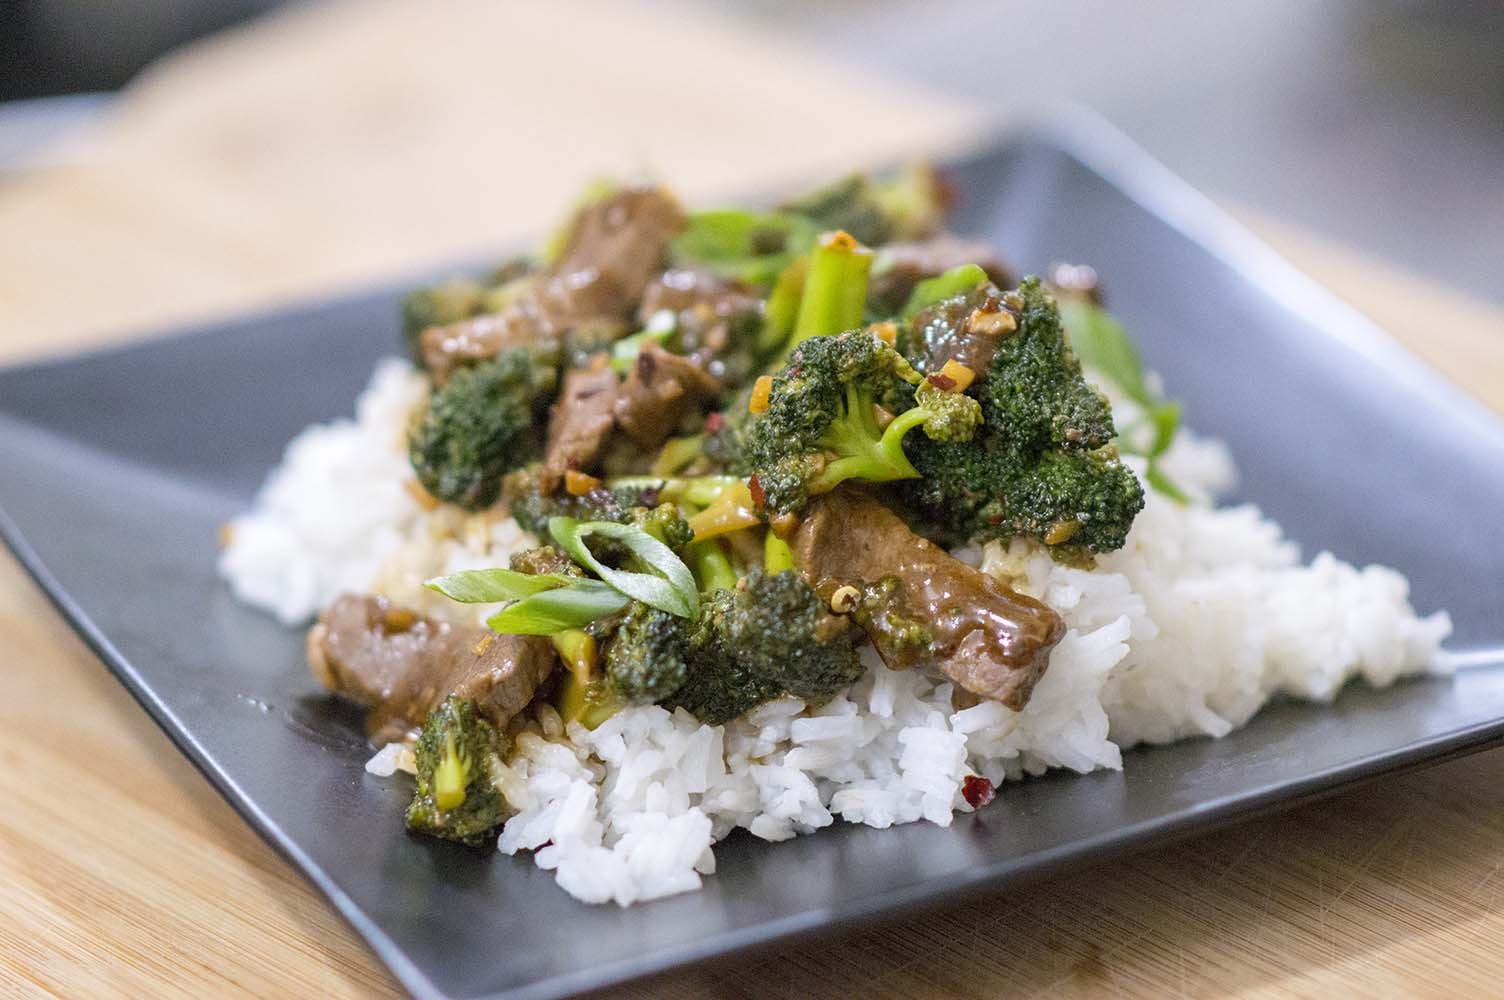 Beef and Broccoli served over rice with green onion